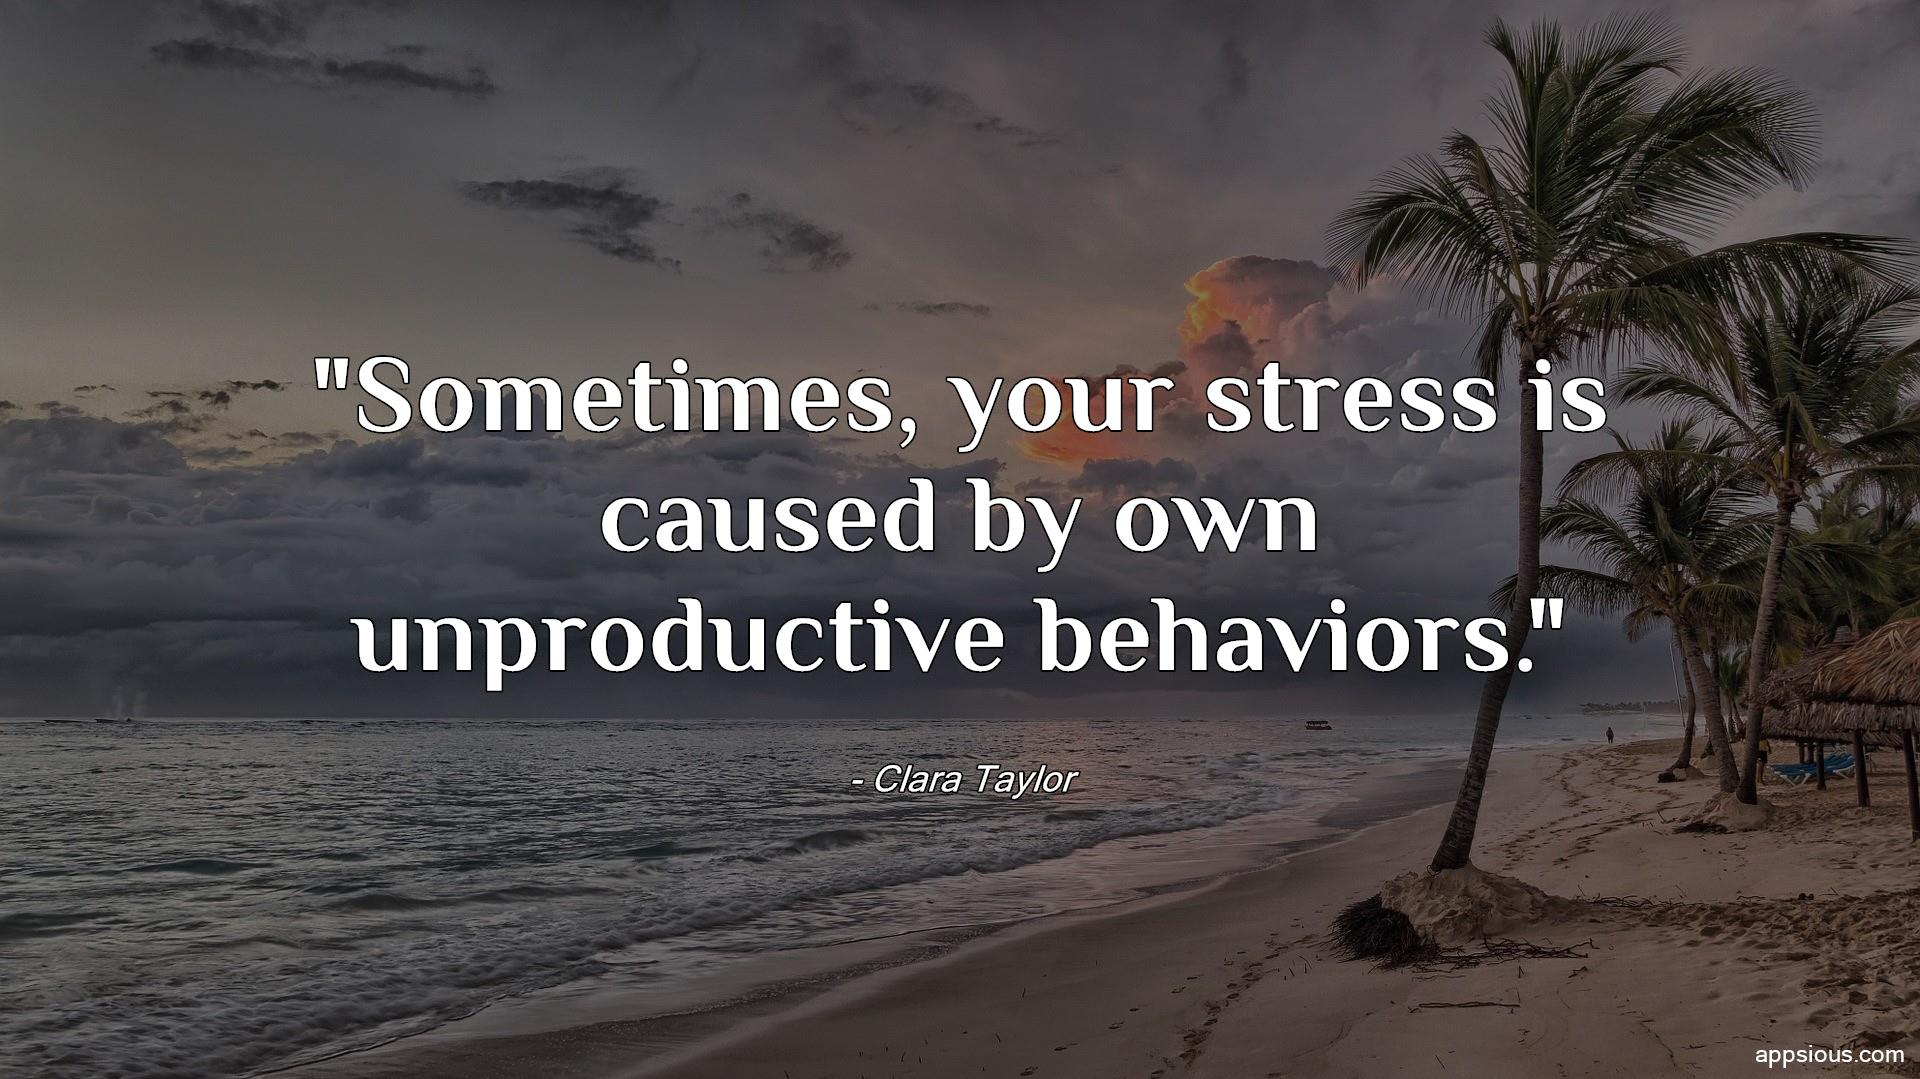 Sometimes, your stress is caused by own unproductive behaviors.